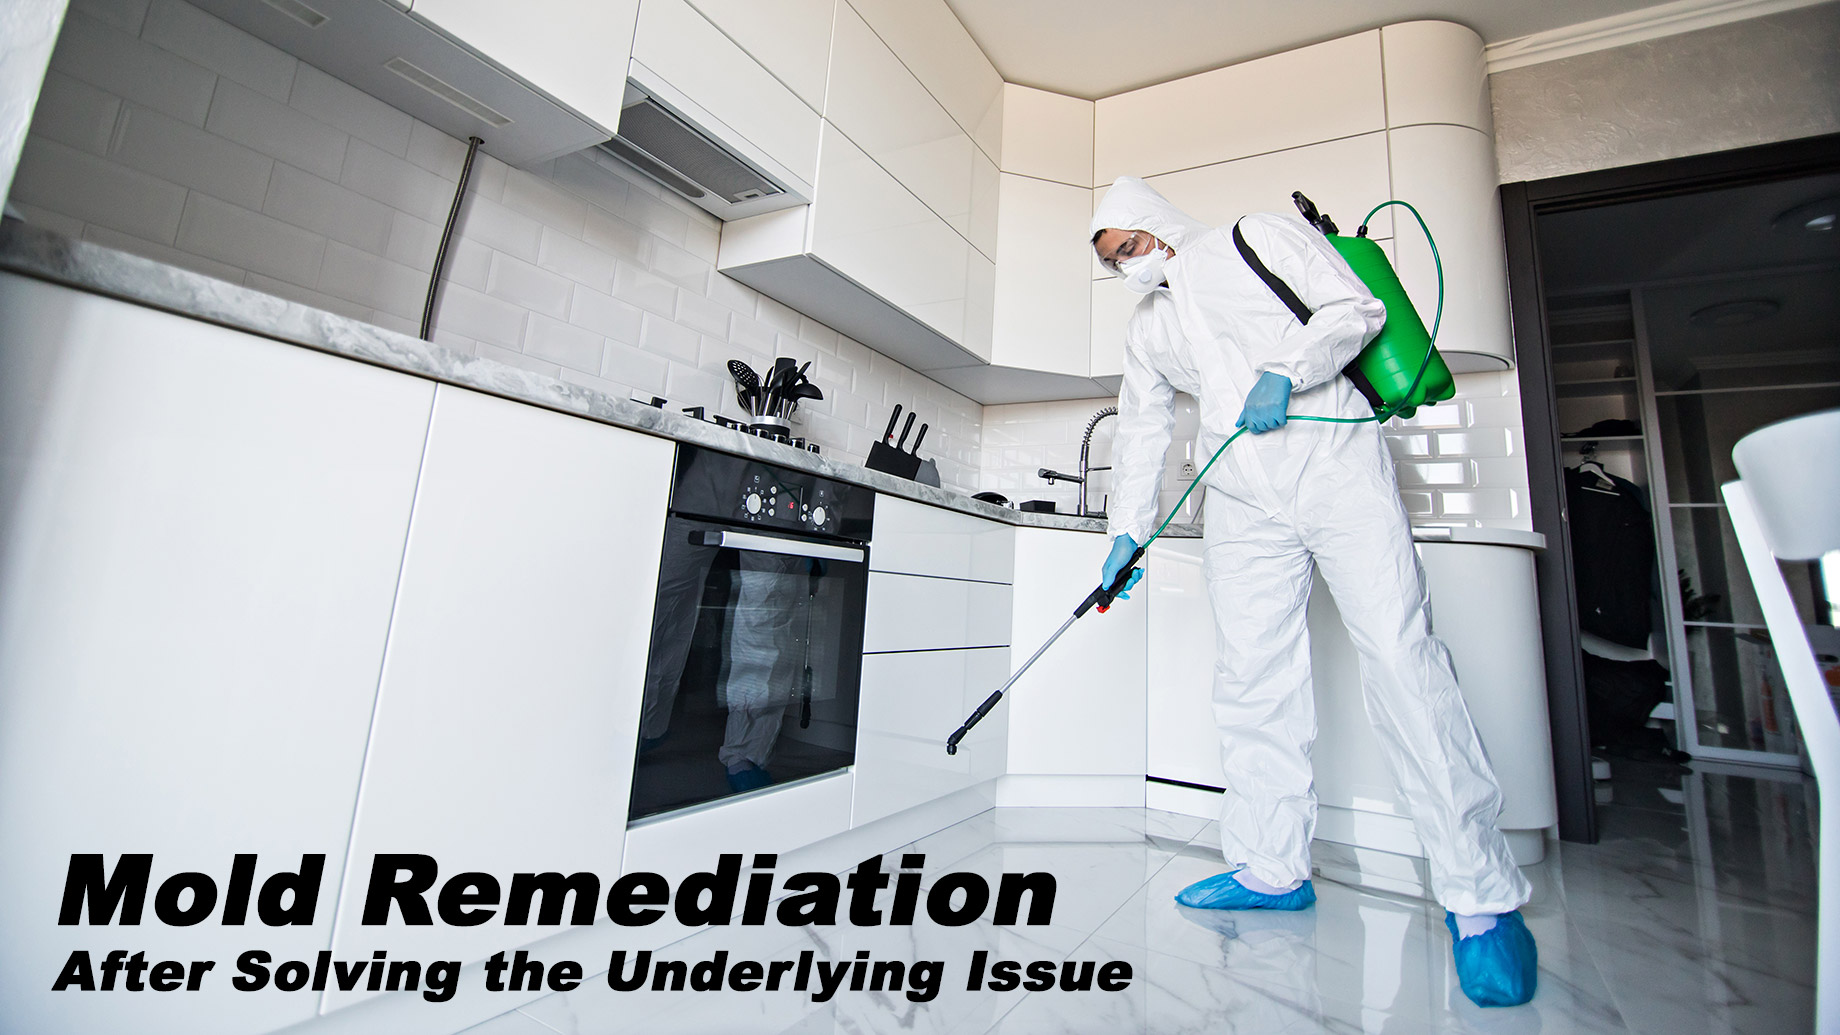 Mold Remediation - After Solving the Underlying Issue